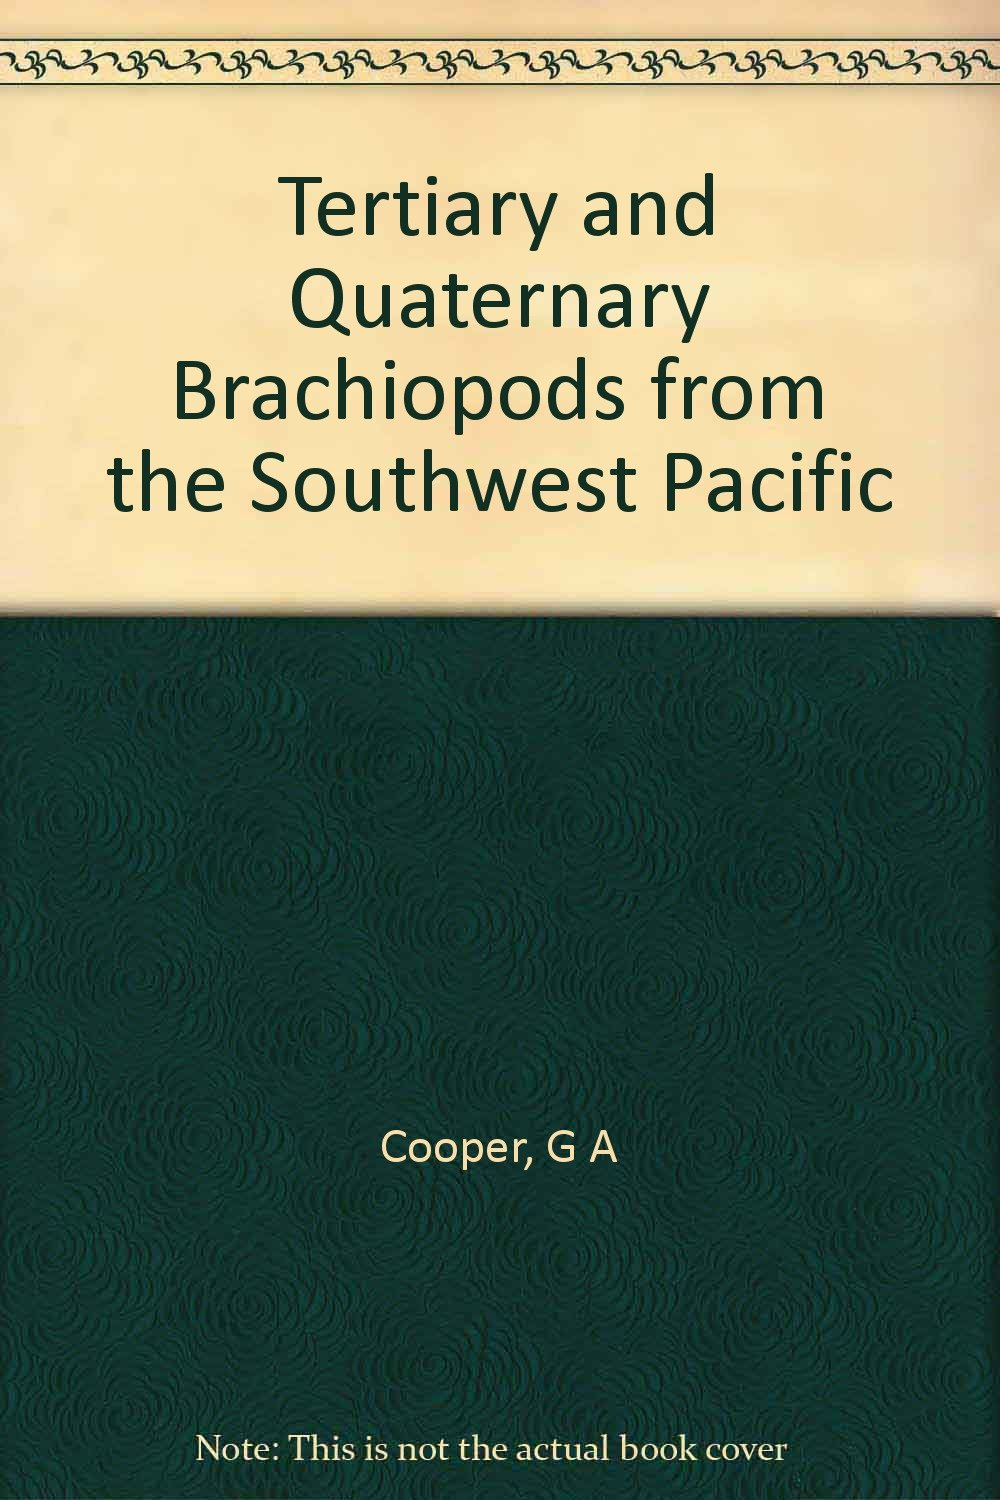 Tertiary and Quaternary brachiopods from the Southwest Pacific (Smithsonian contributions to paleobiology ; no. 38)